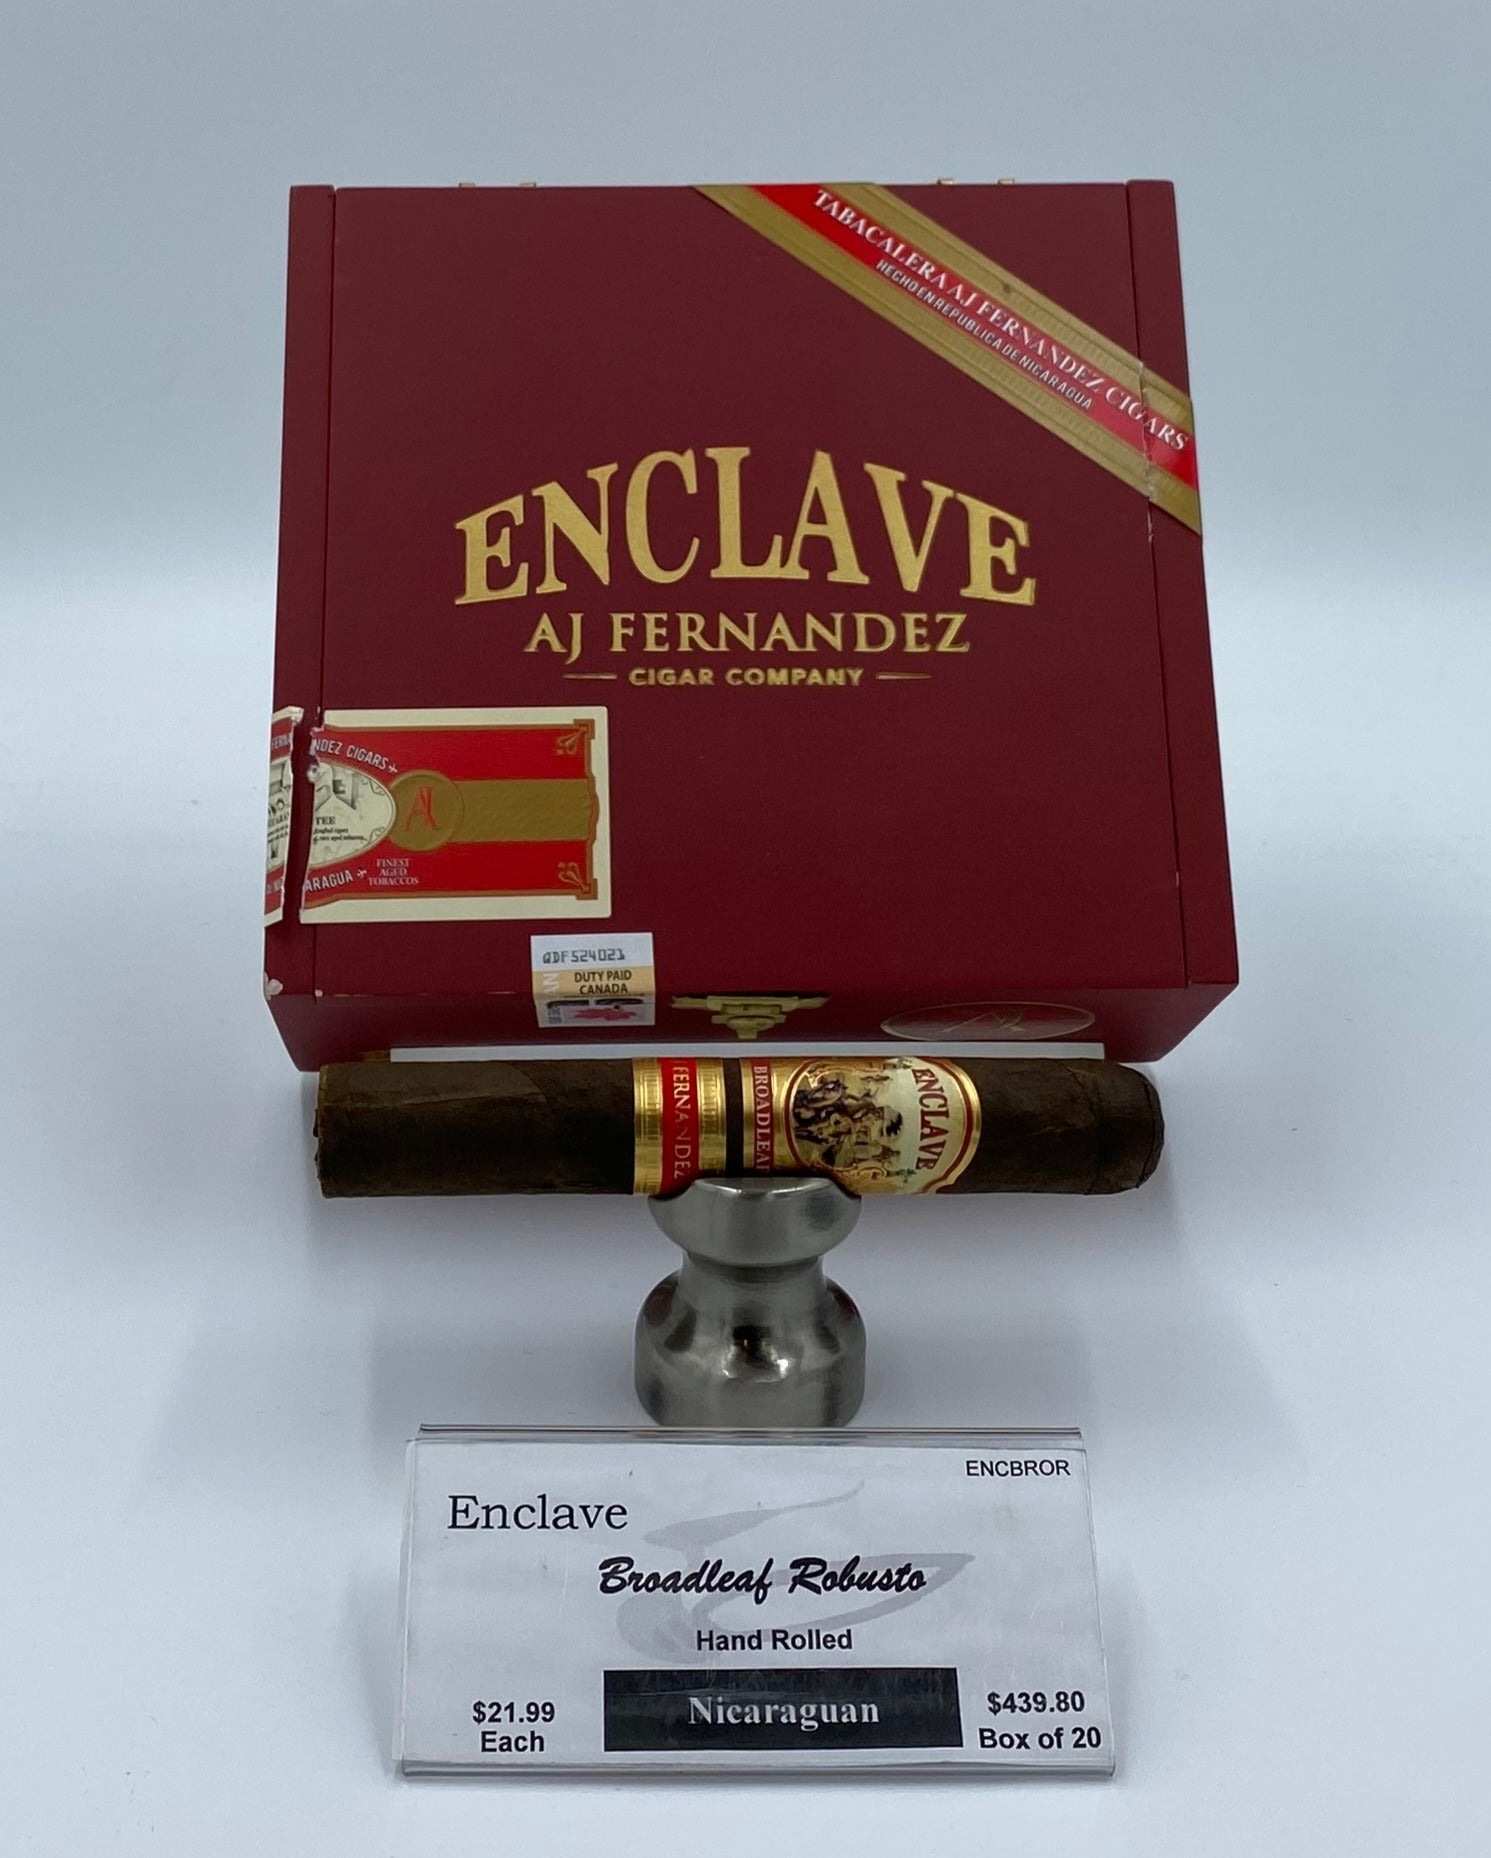 Enclave Broadleaf Robusto